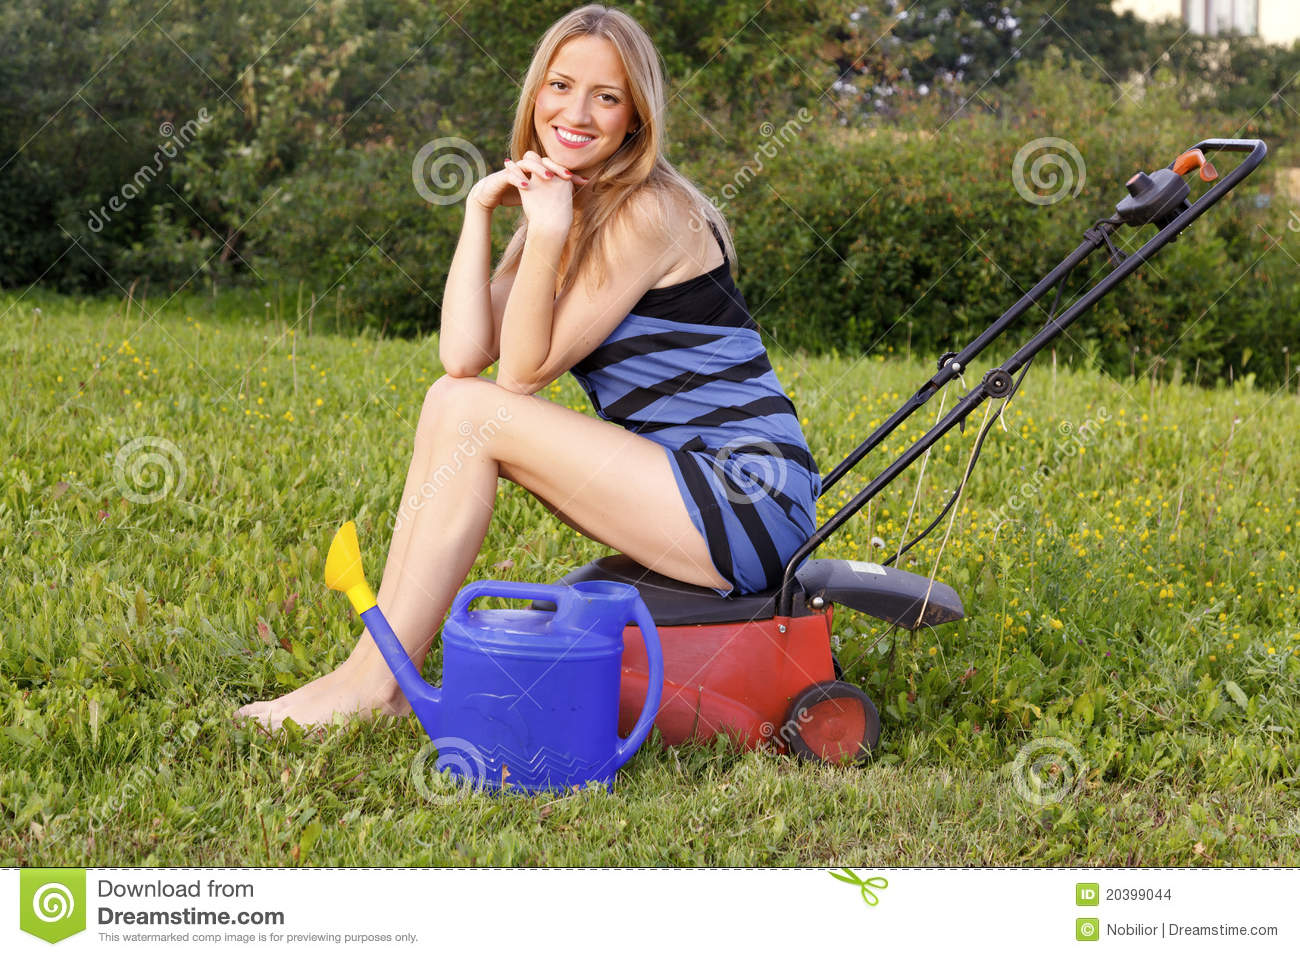 Mine very naked woman on riding lawnmower